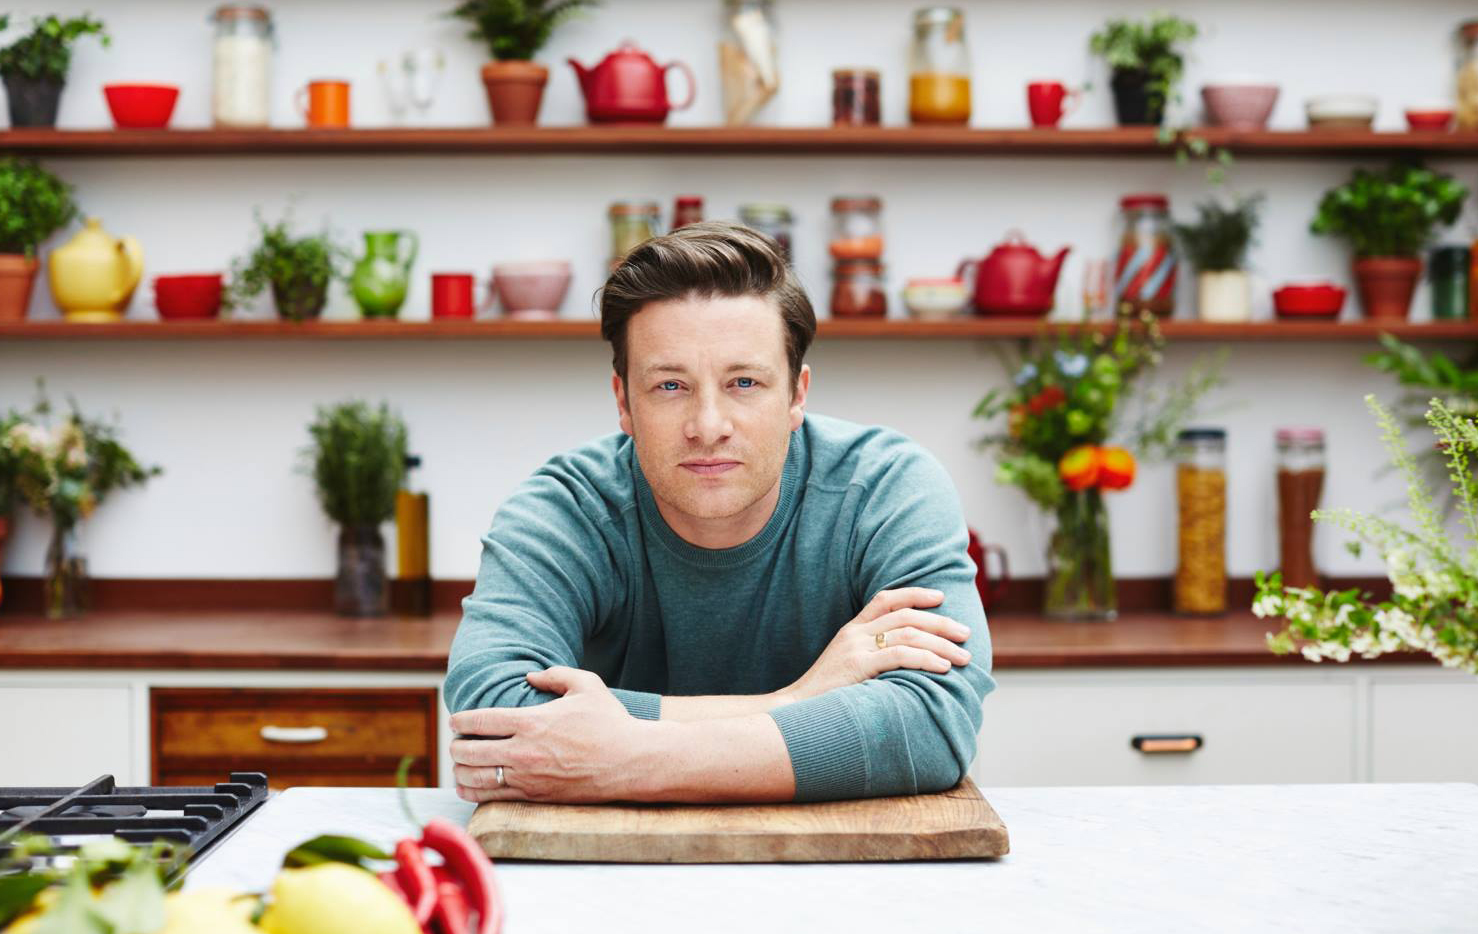 Jamie Oliver To Promote Eating Less Or No Meat In A Vegan